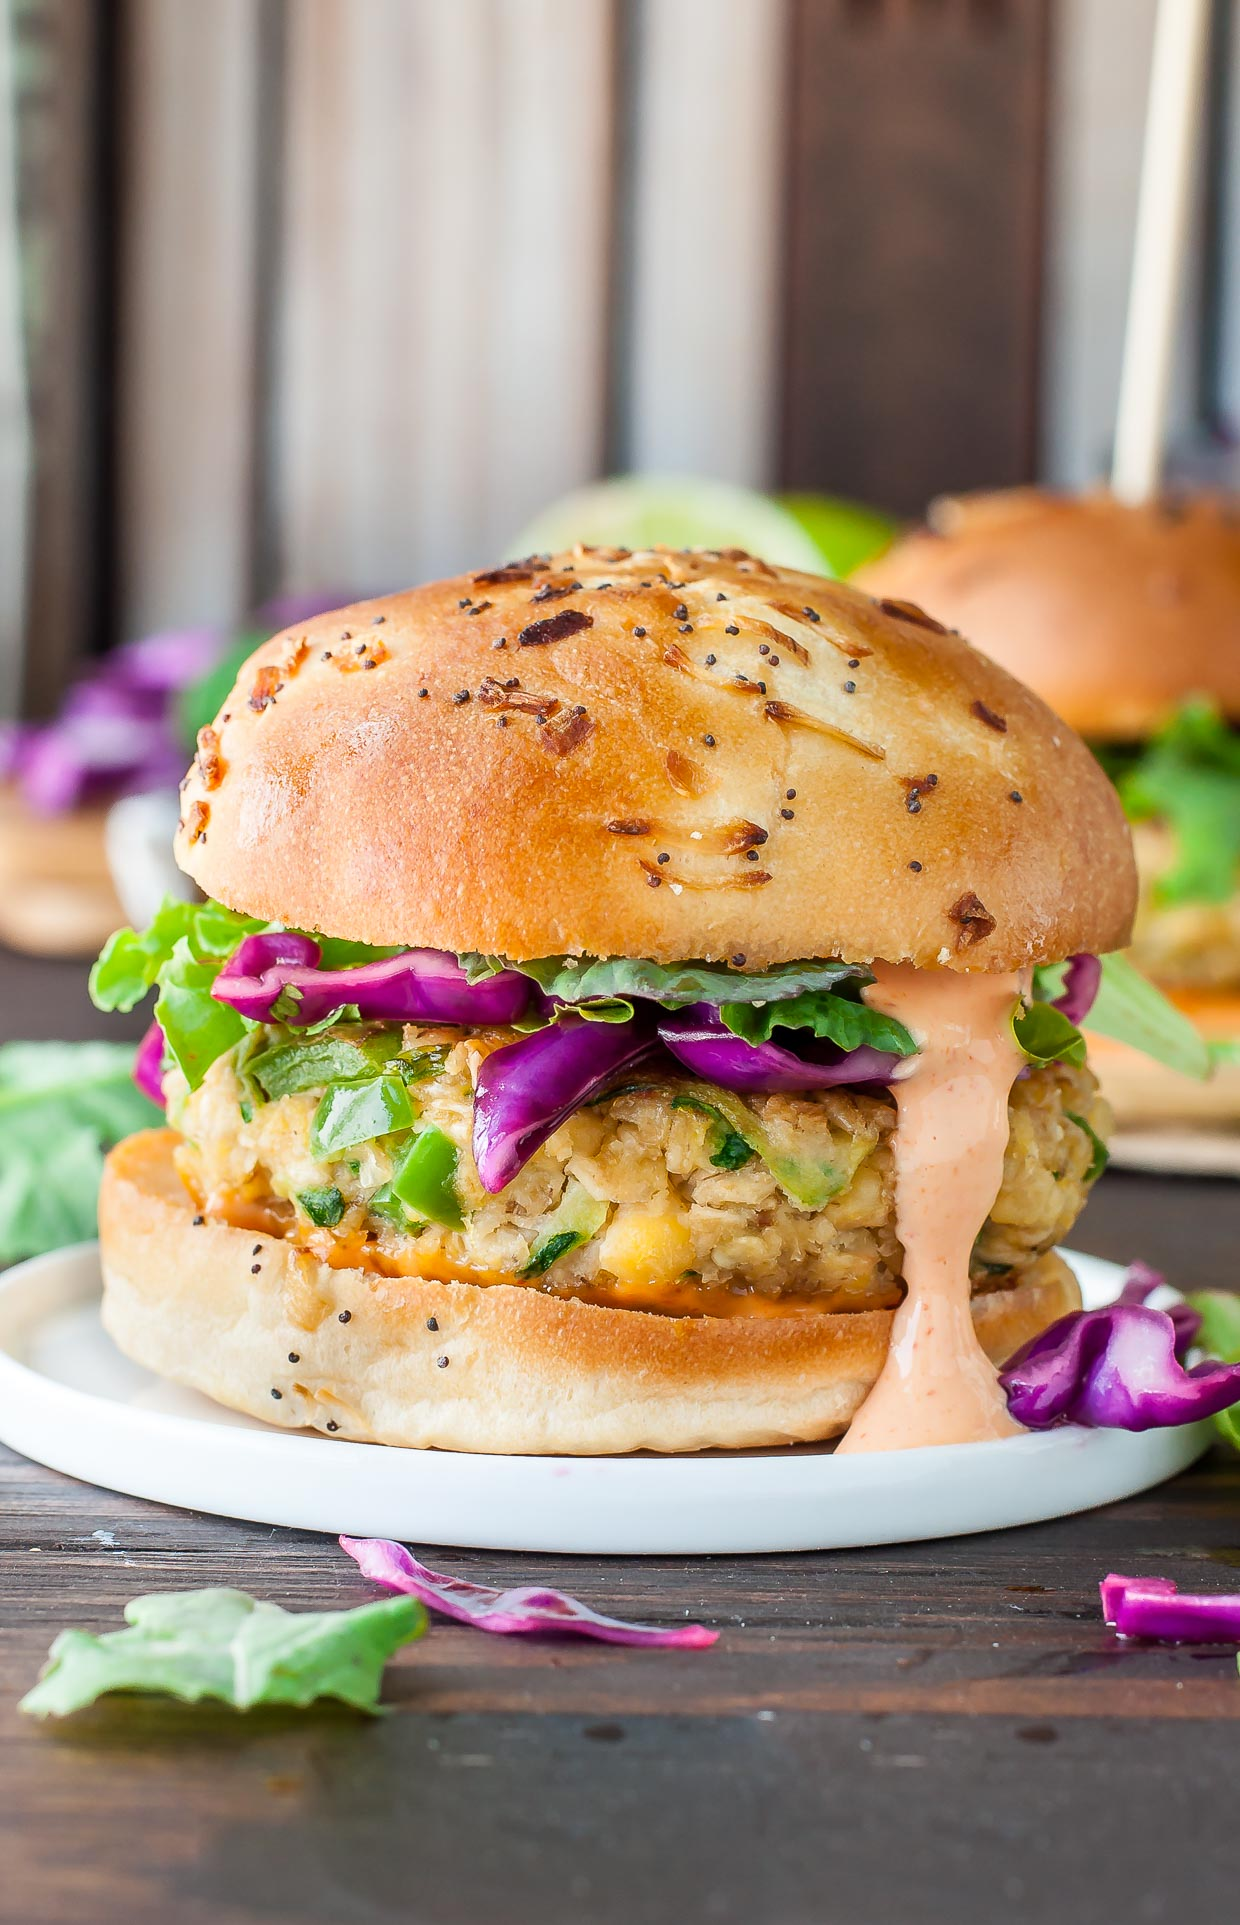 Spicy Chickpea Veggie Burgers With Jalapeno And Zucchini